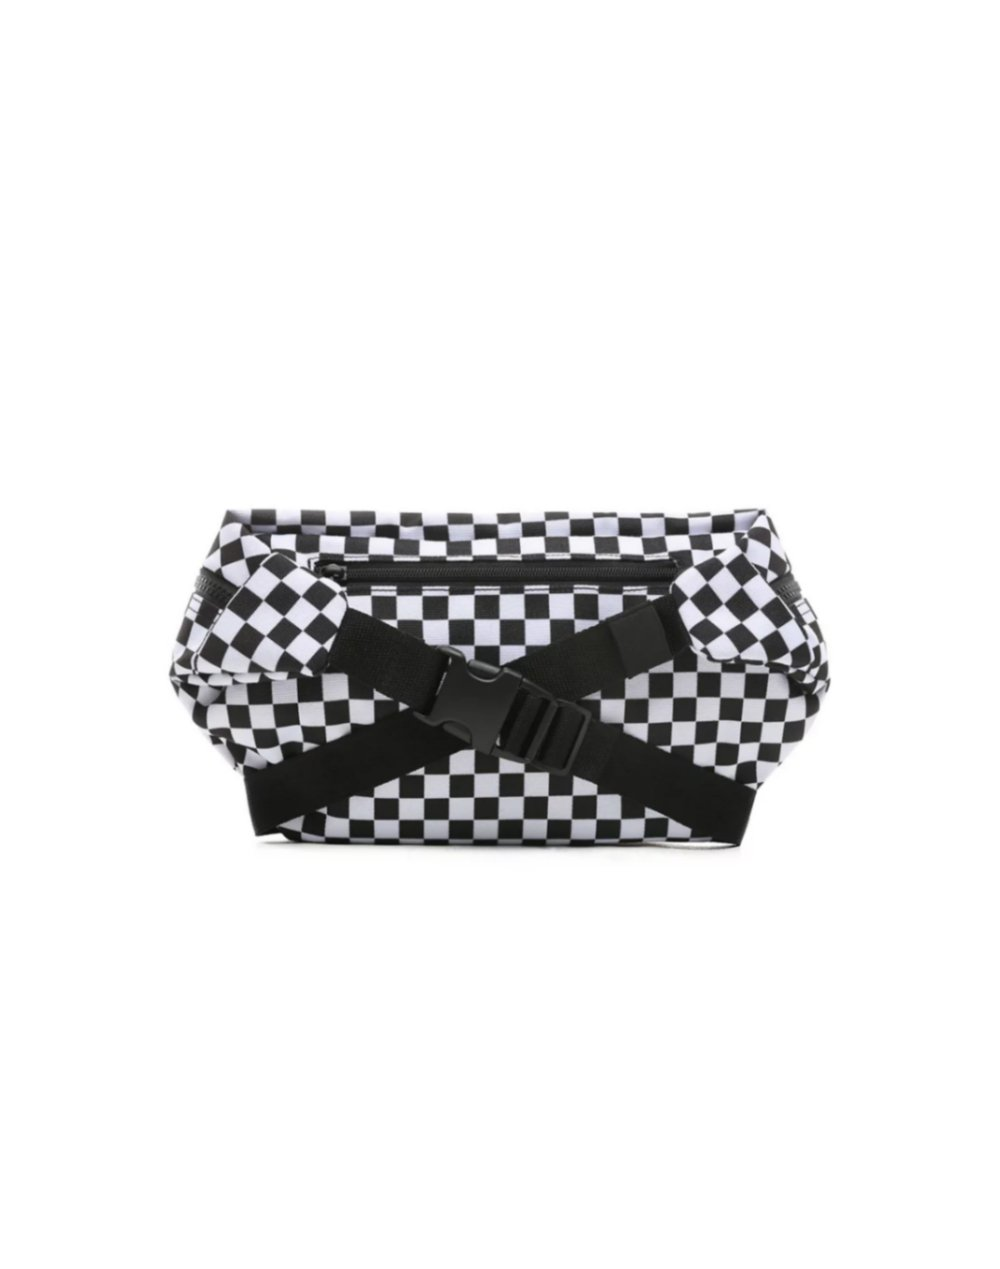 Vans Ranger Waist Pack 4L (VN0A3NG756M1) Black/White Checkerboard